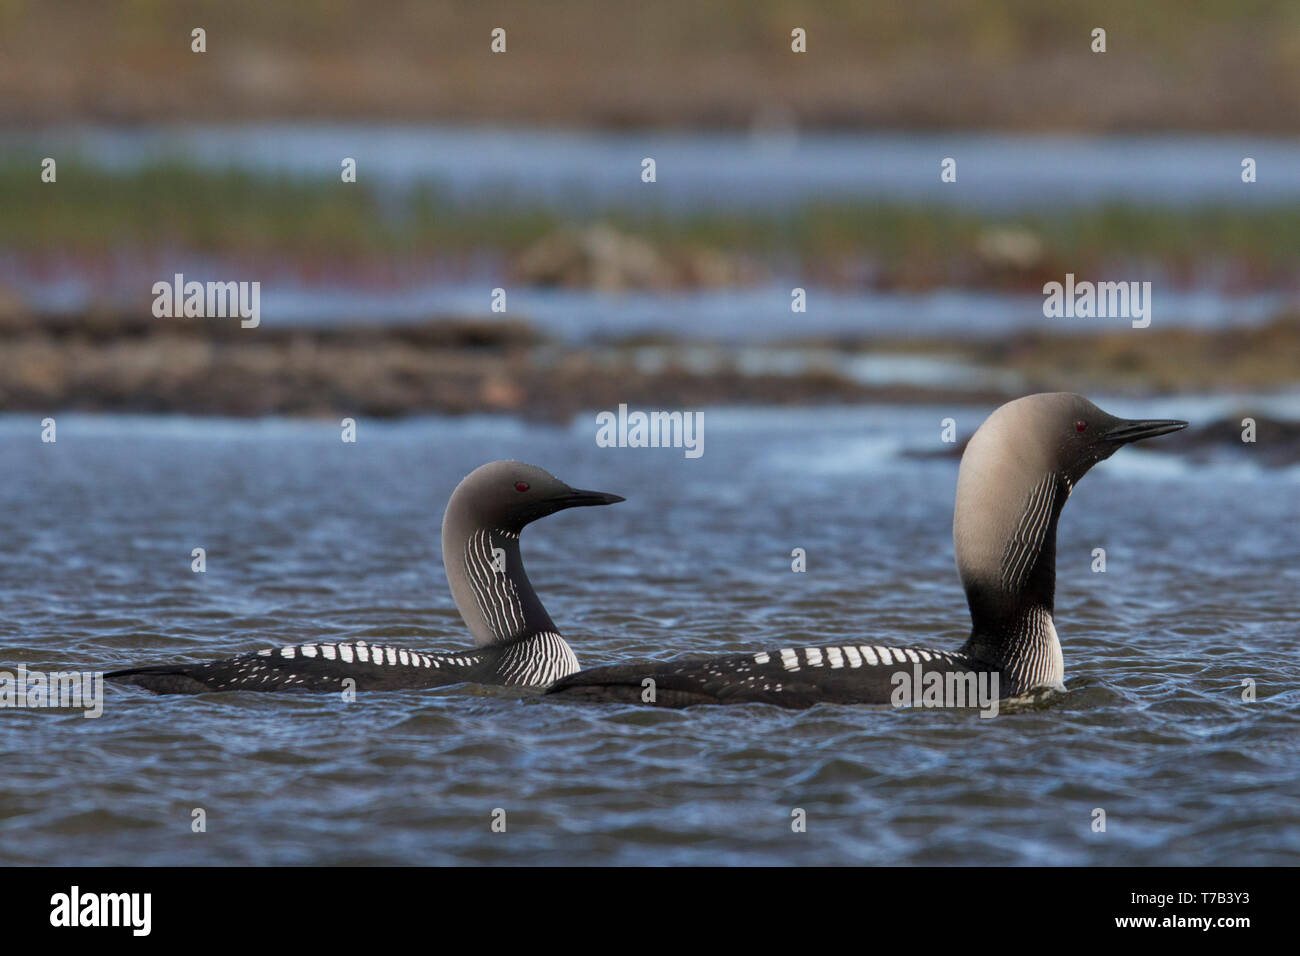 Male and female Pacific Loon or Pacific Diver (Gavia pacifica) in breeding plumage swimming in arctic waters, near Arviat Nunavut, Canada - Stock Image